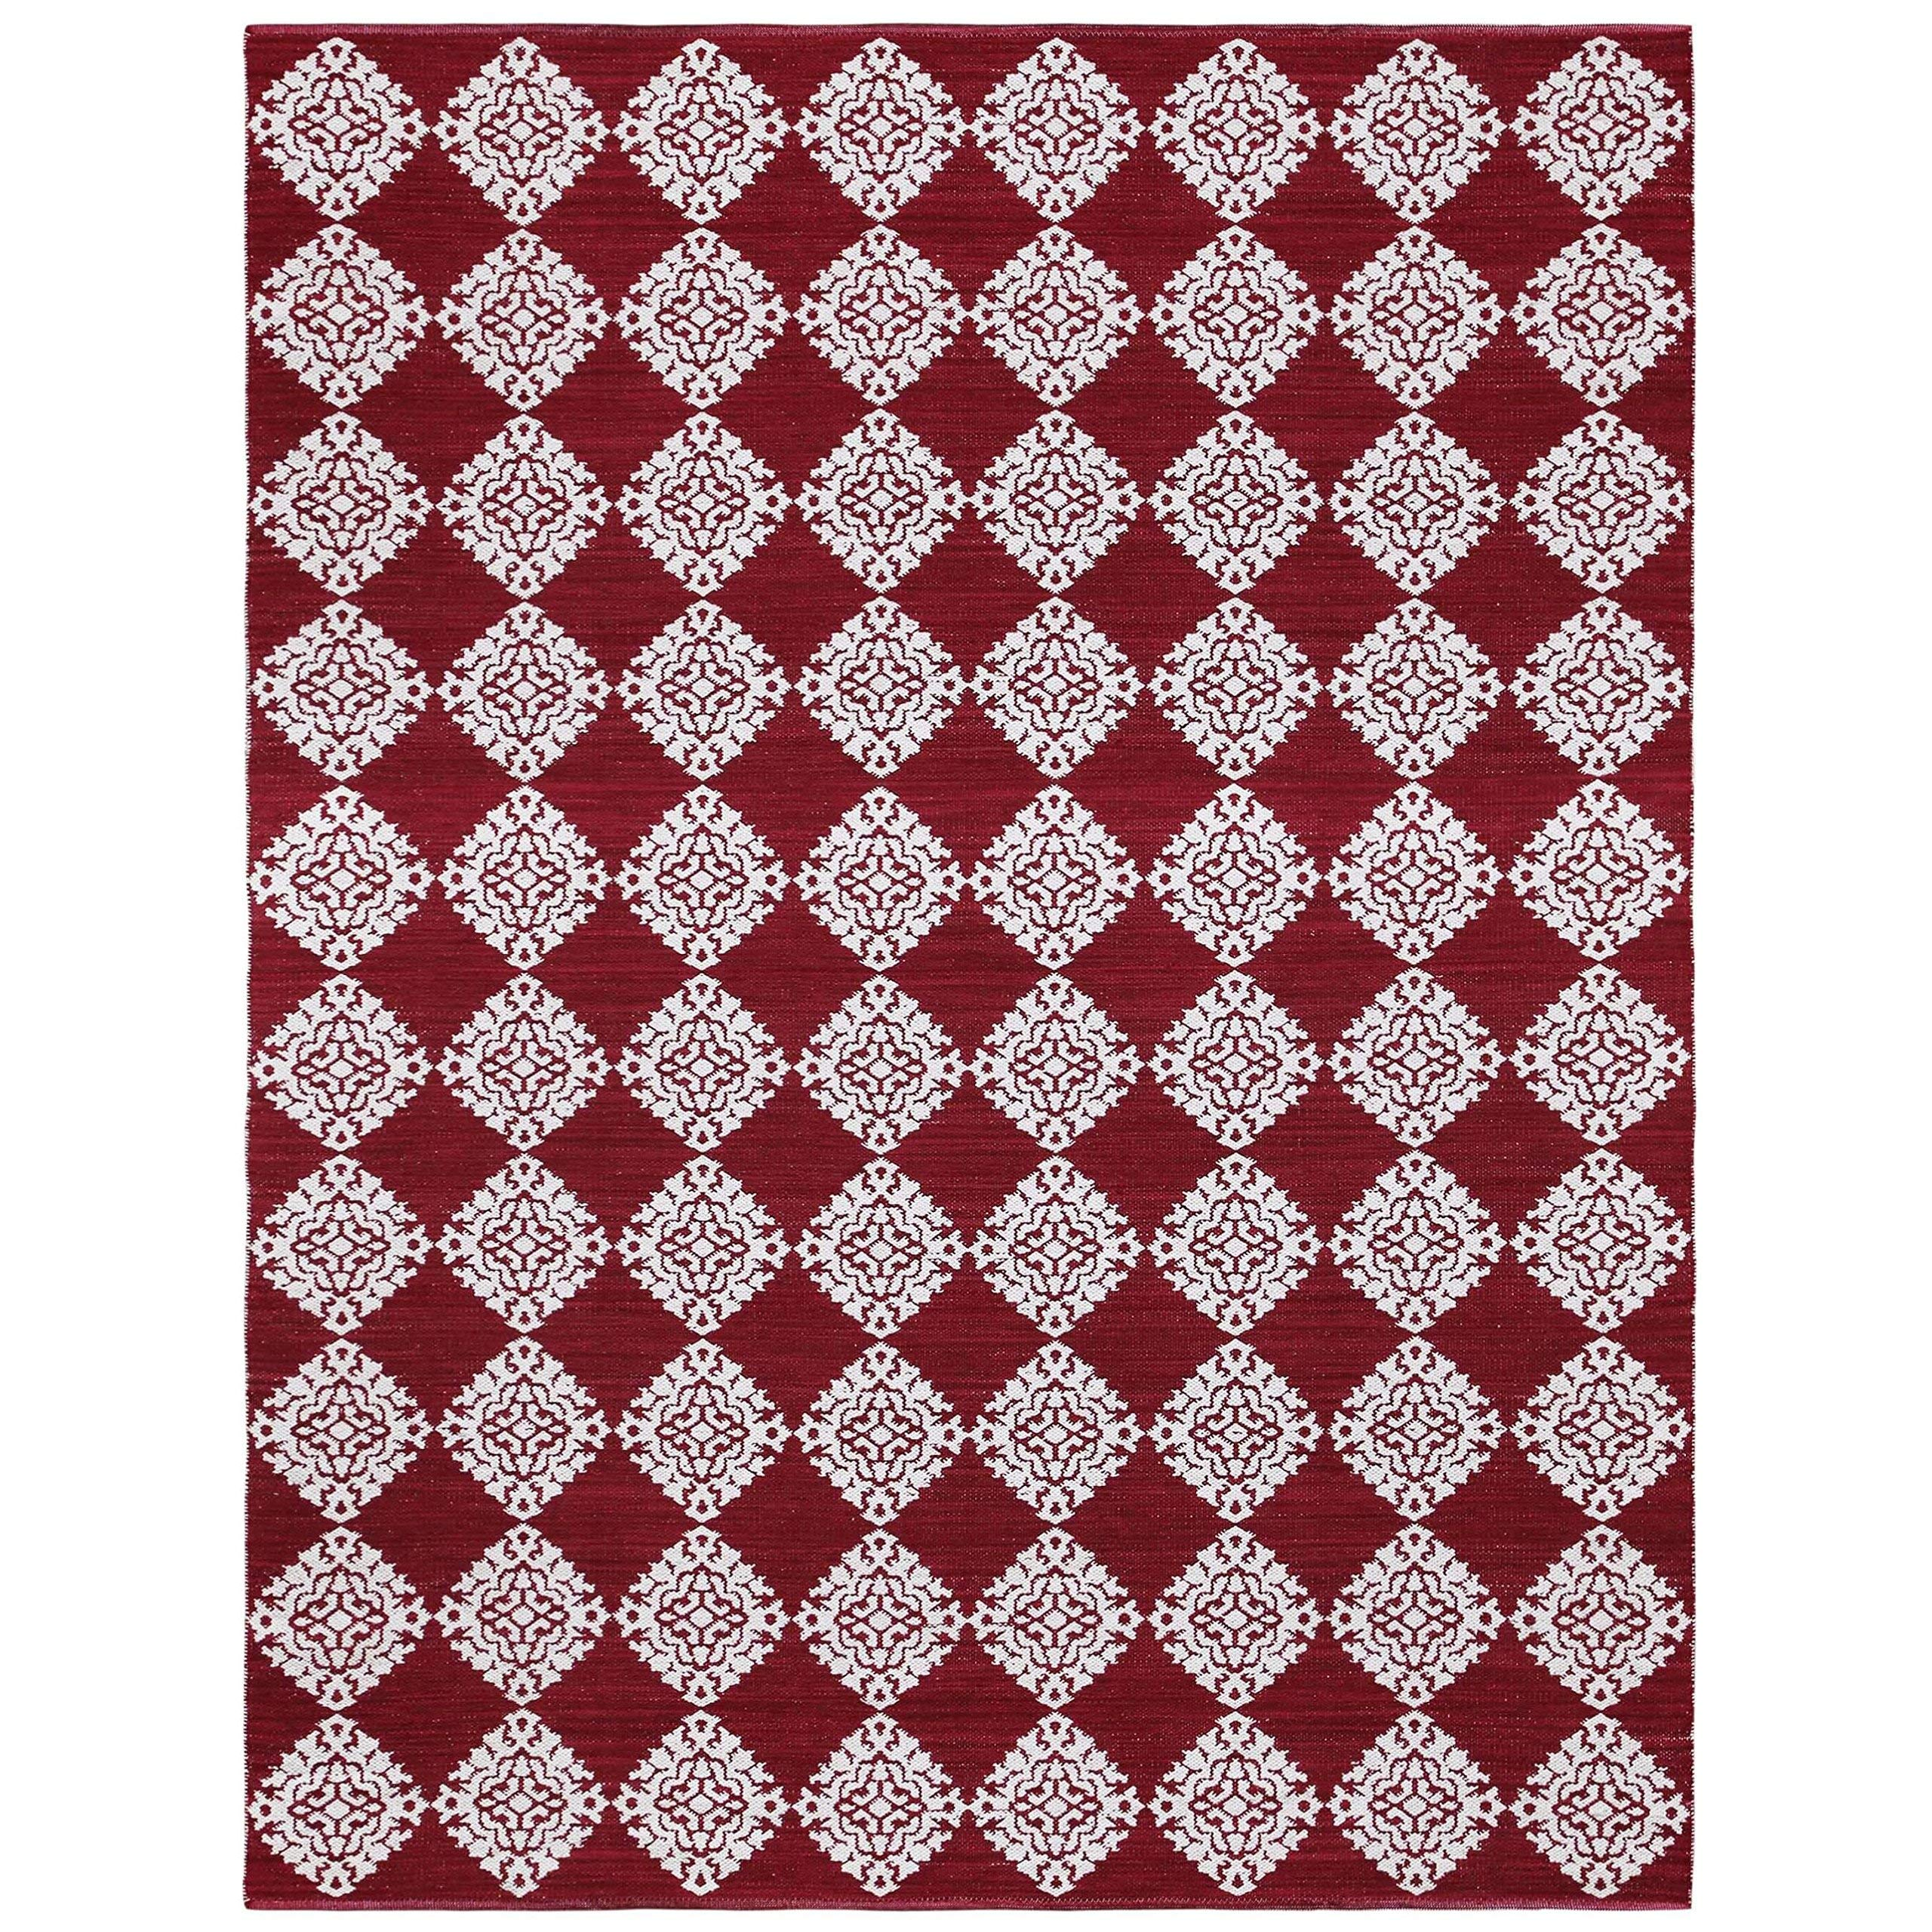 Best Buy Jacquard CJ9002 Medallion Cotton Rug 9 x 12 Red Reviews